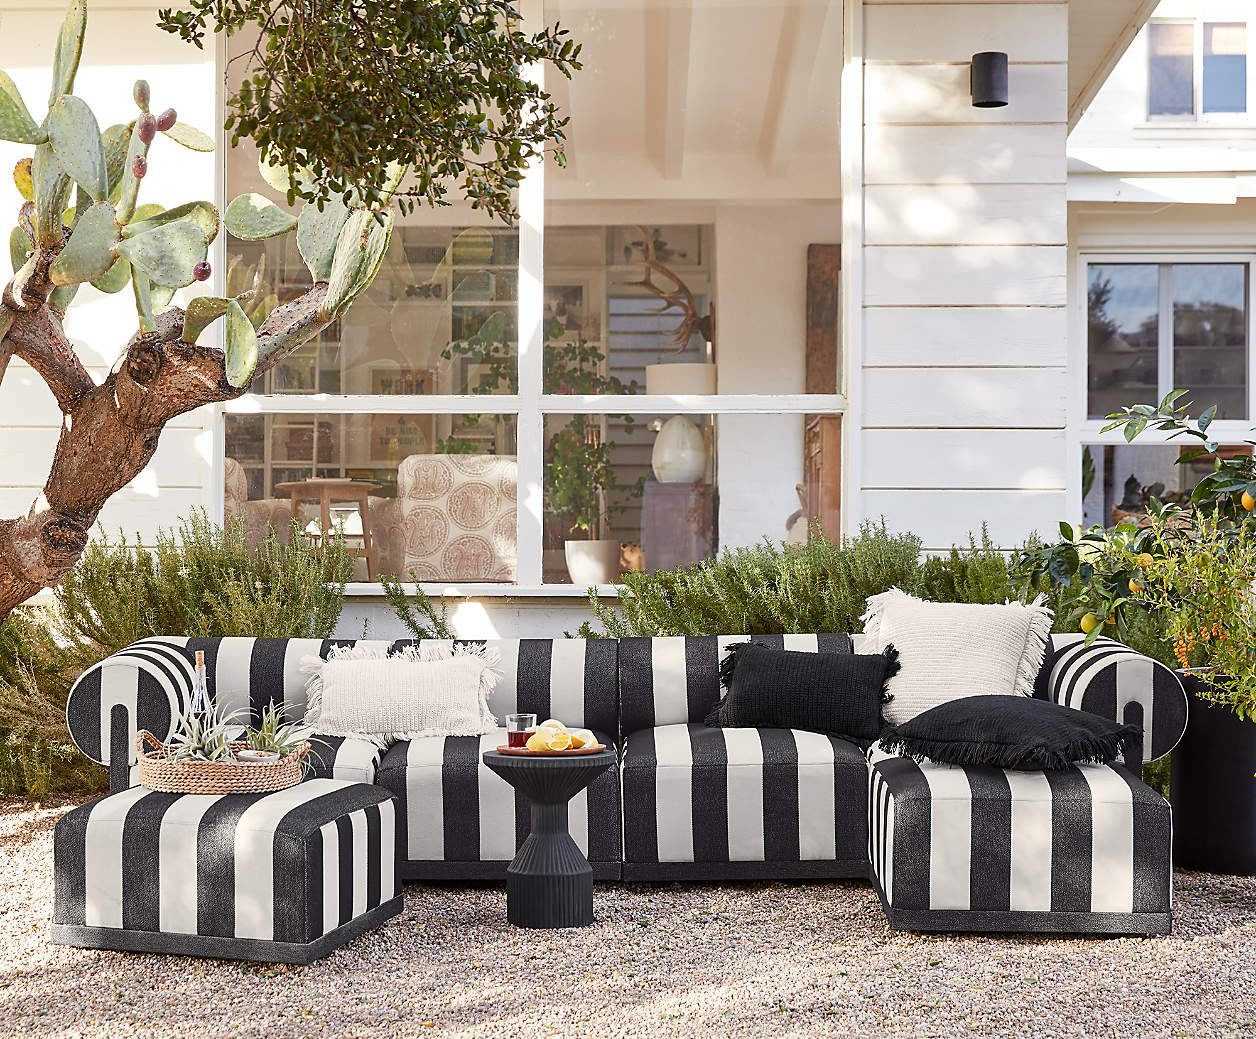 Crate and Barrel Comfy Outdoor Lounge Seating Ottoman and Sectional Chair Sofa Black White Striped